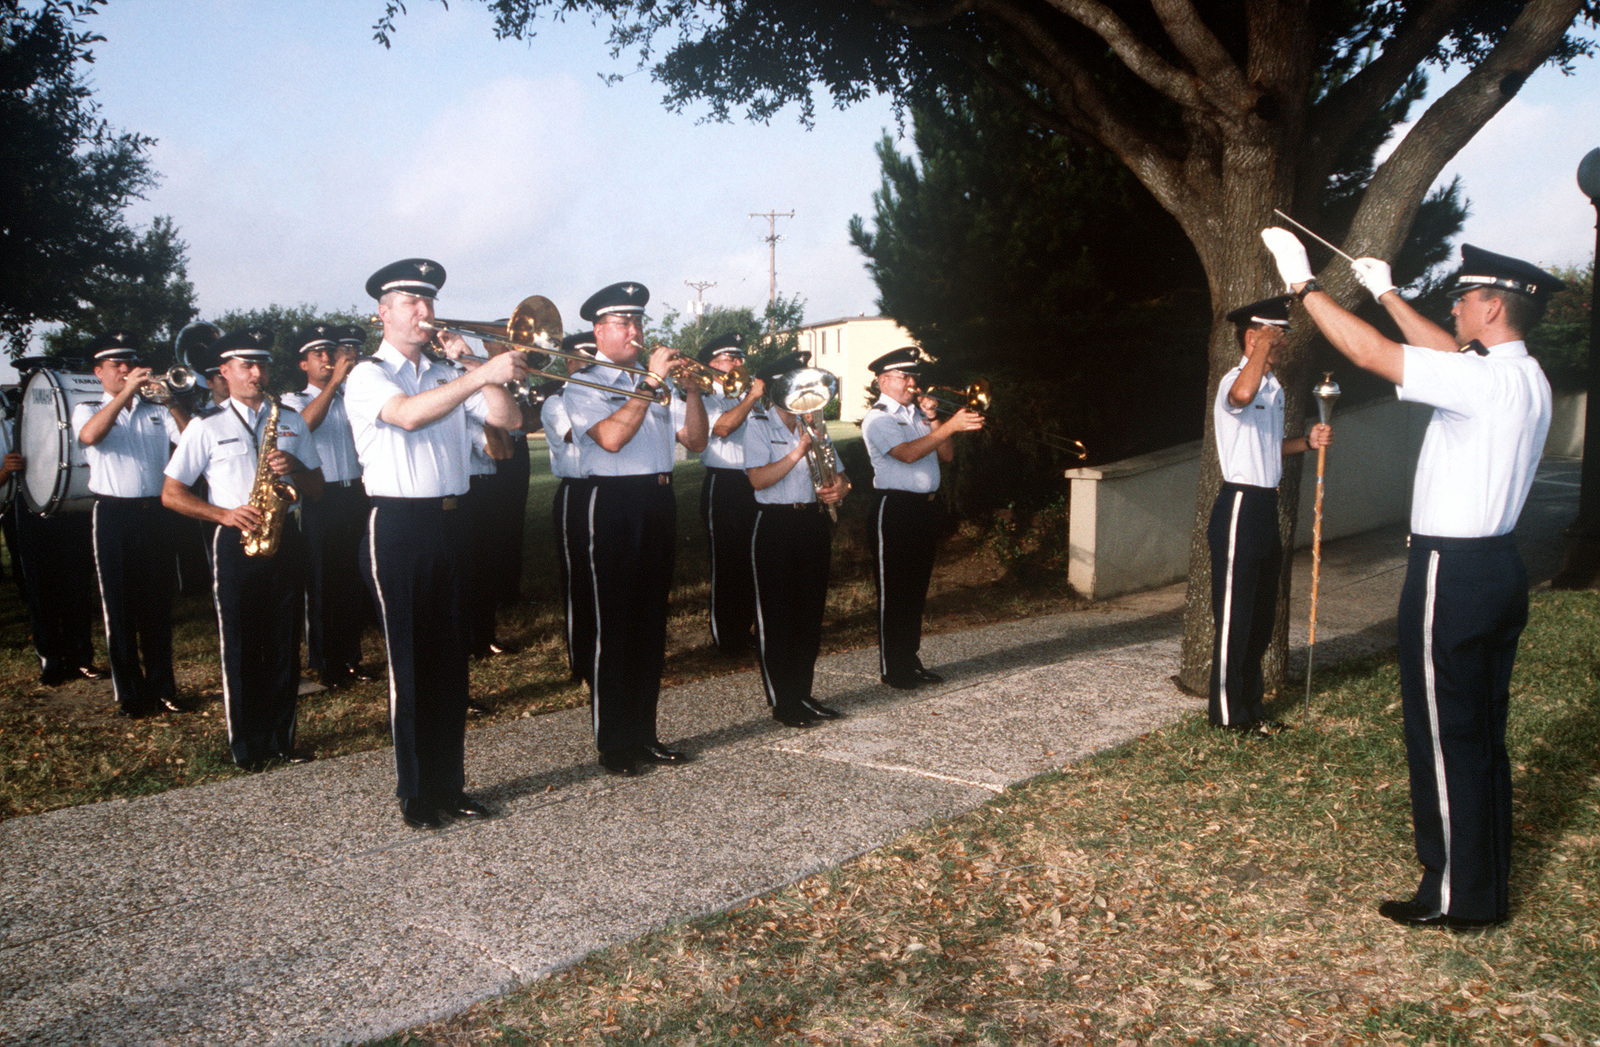 The United States Air Force Band of the West, from Lackland Air Force Base, Texas, play the National Anthem during the 311th Human Systems Wing Change of Command at Brooks Air Force Base, Texas